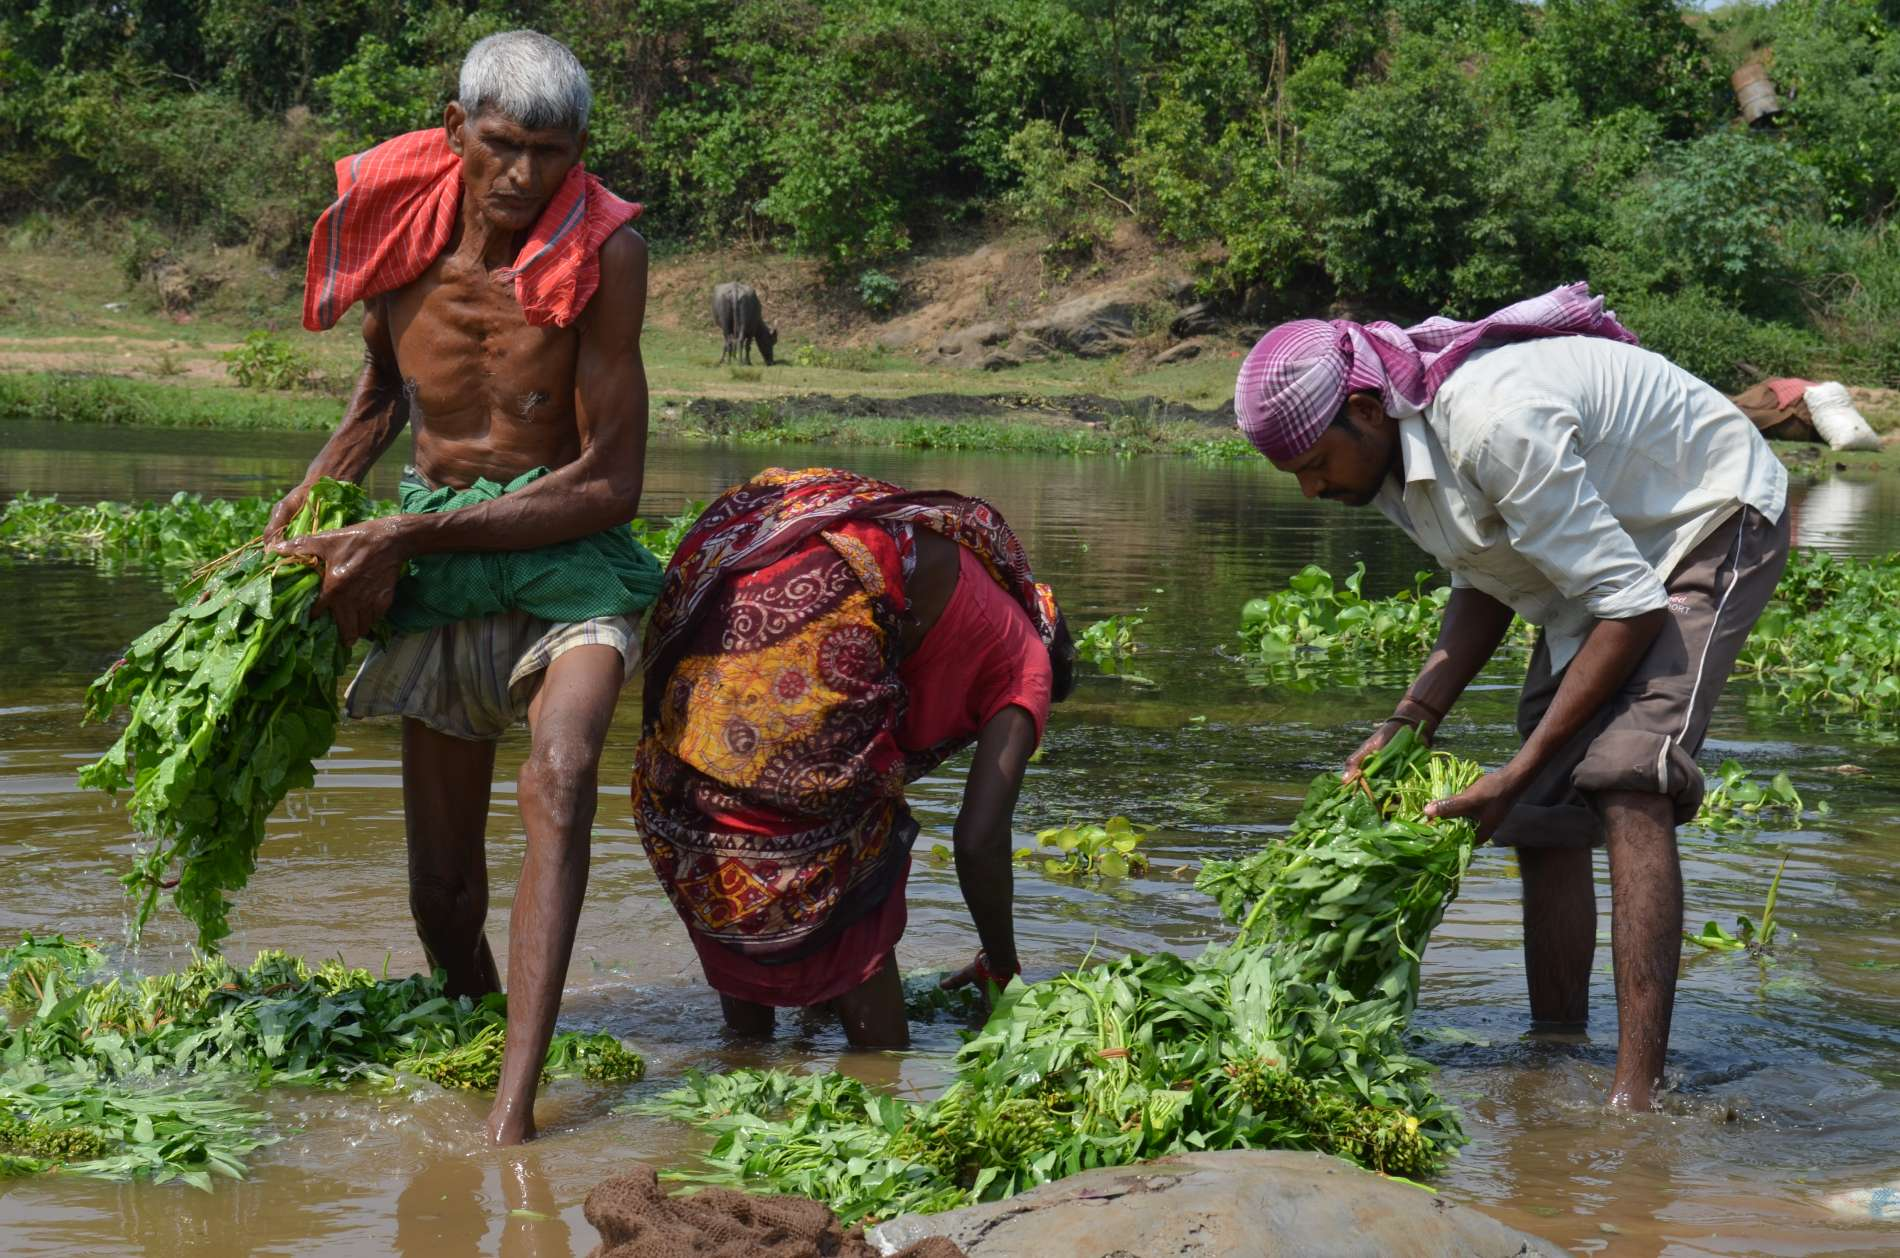 Villagers drink, bathe and wash themselves, their clothes and their food in the tributaries of the Subarnarekha River, which a 2009 study found to be heavily contaminated with alpha radiation, with levels 192 percent higher than safe limits set by the World Health Organization. (Photo:Ashish Birulee)